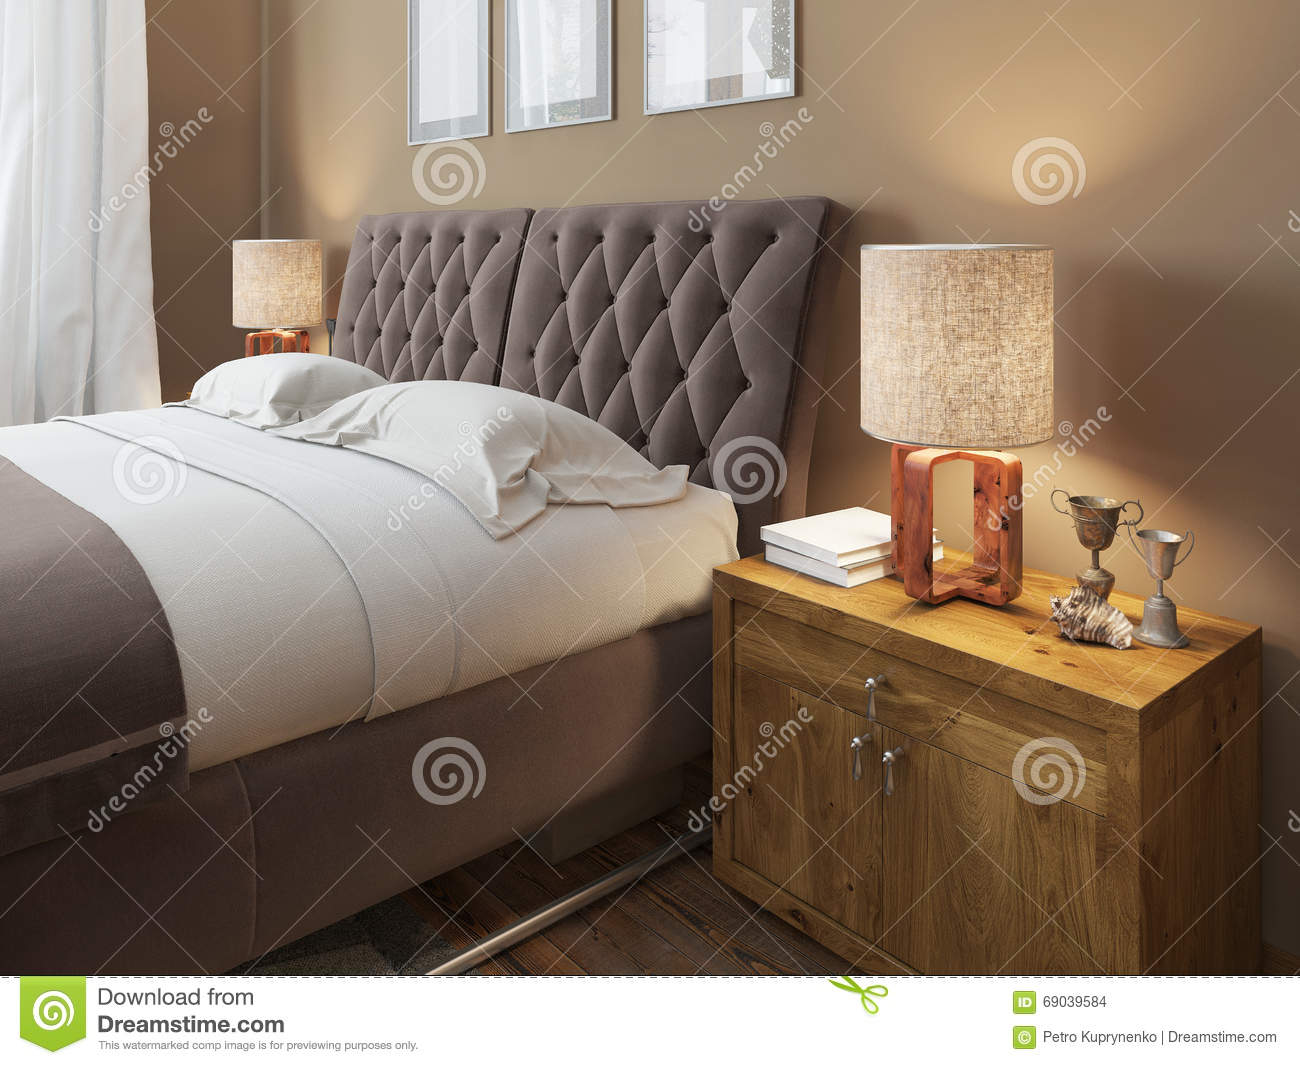 Wooden Bedside Tables With Expressive Textures In A Modern Bedroom Stock Illustration Illustration Of Interior Beautiful 69039584